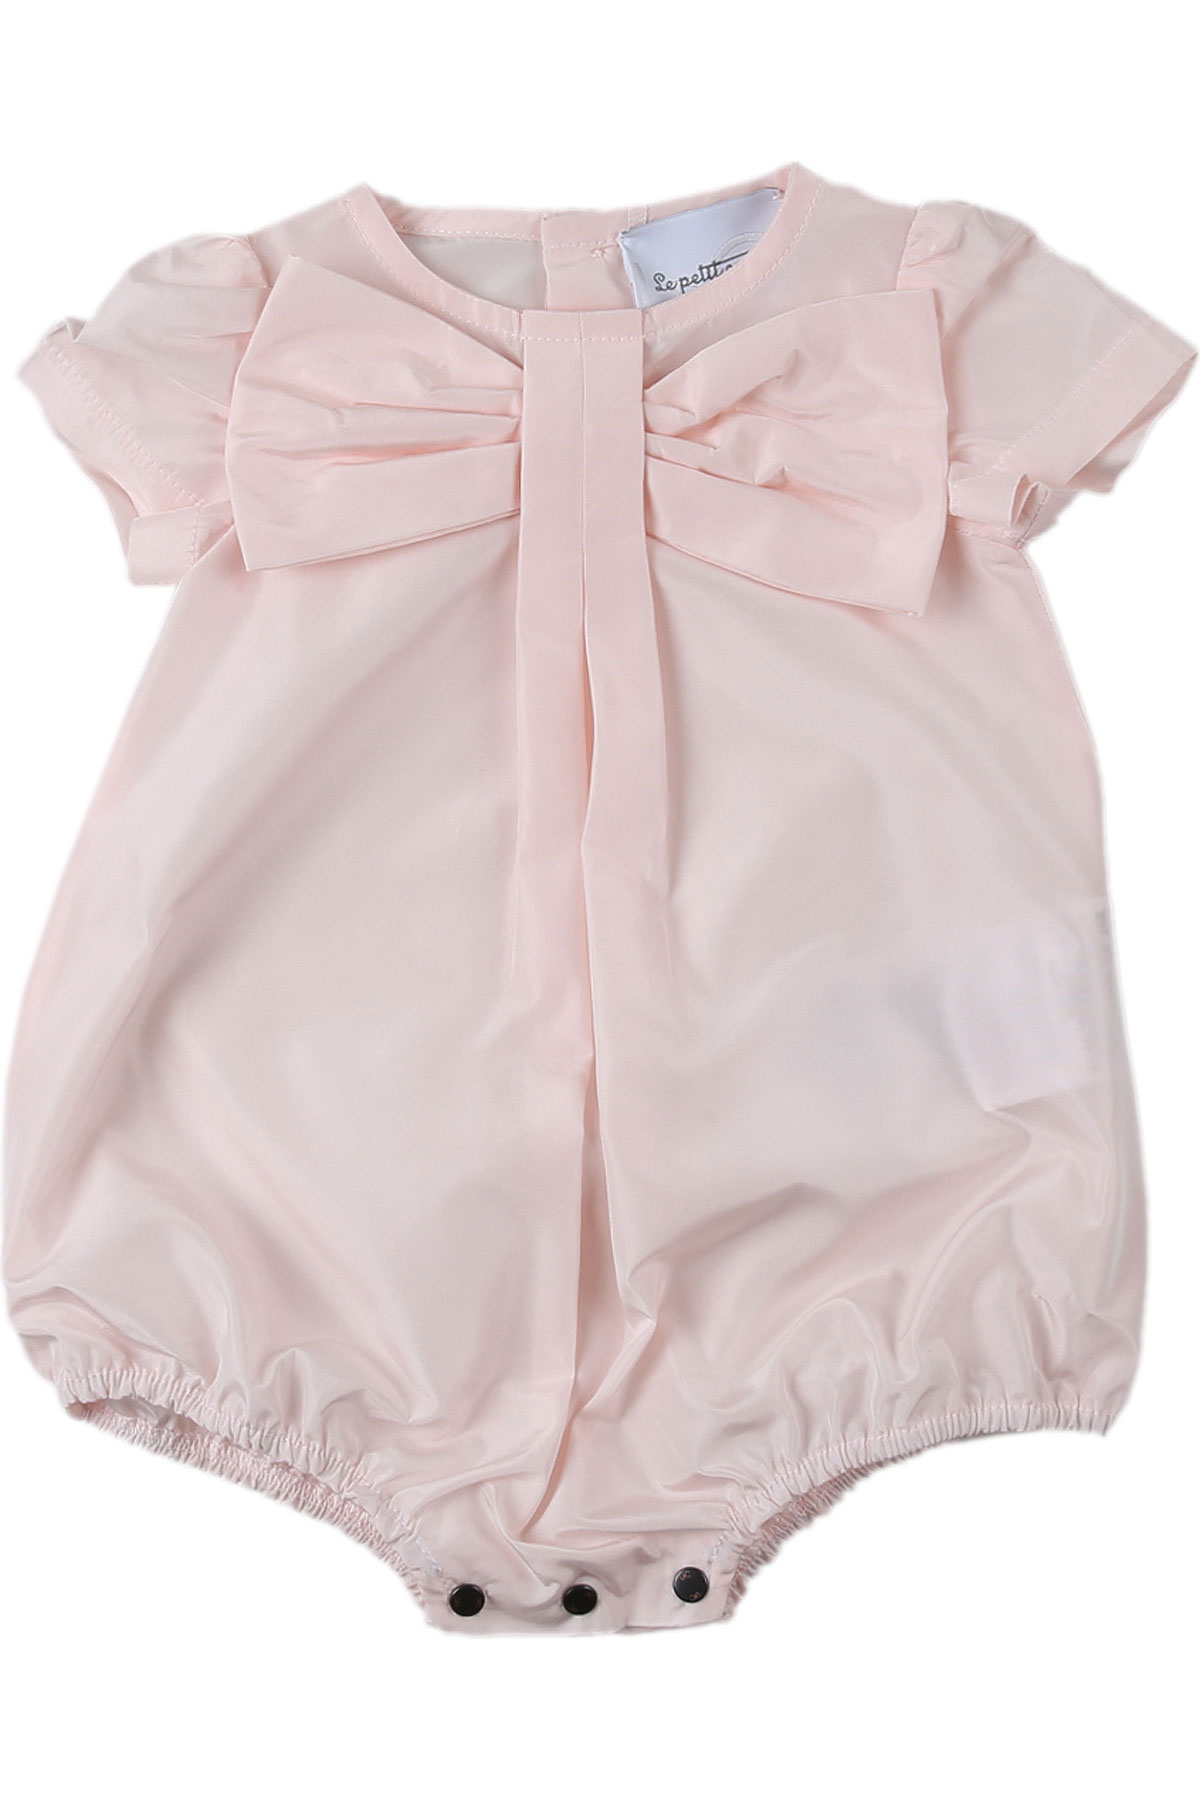 Le Petit Coco Baby Bodysuits & Onesies for Girls On Sale, Pink, acetate, 2019, 1M 3M 6M